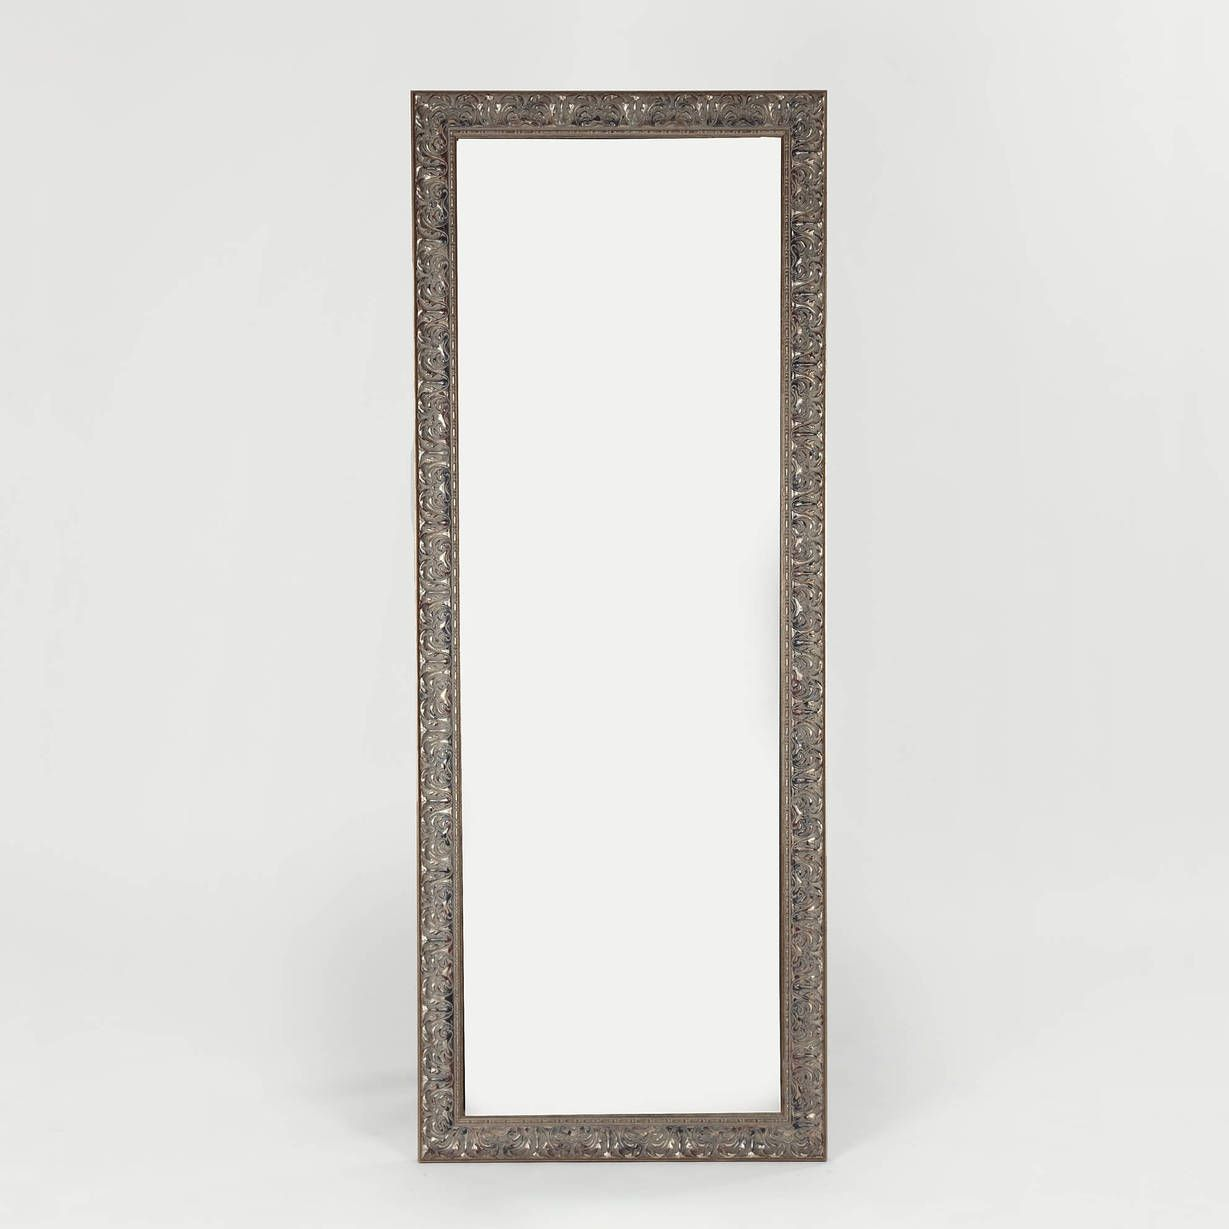 GK Framing — Distressed Silver Border Mirror — THE LINE